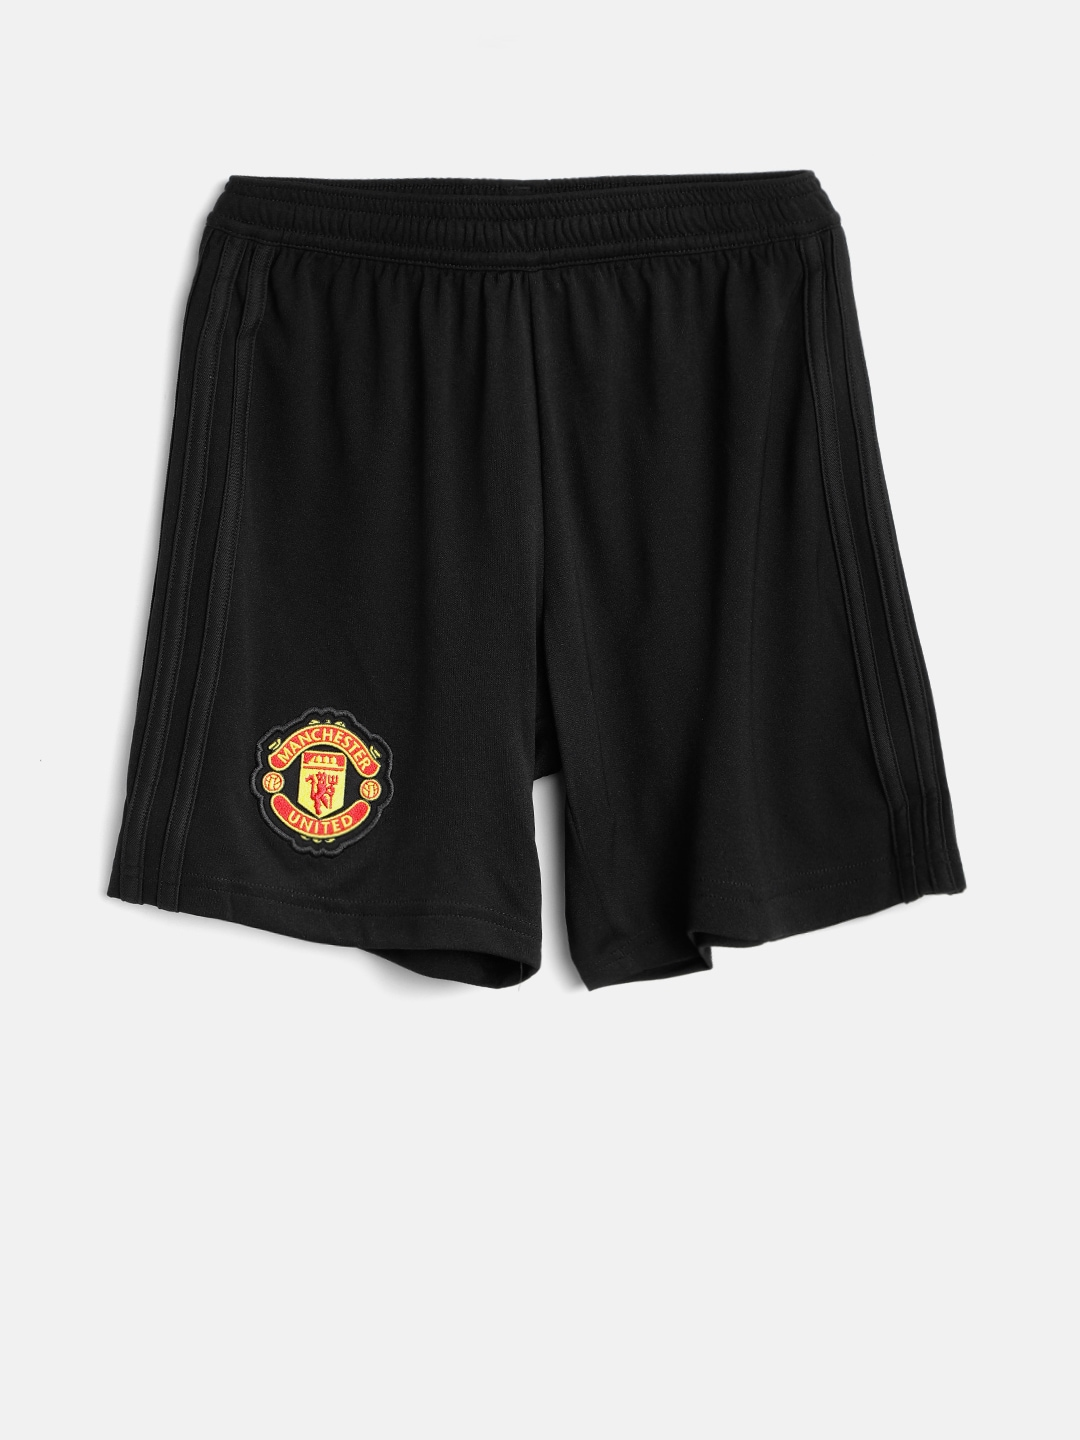 f5accbbb9 Manchester United Clothing - Buy Manchester United Clothing Online in India